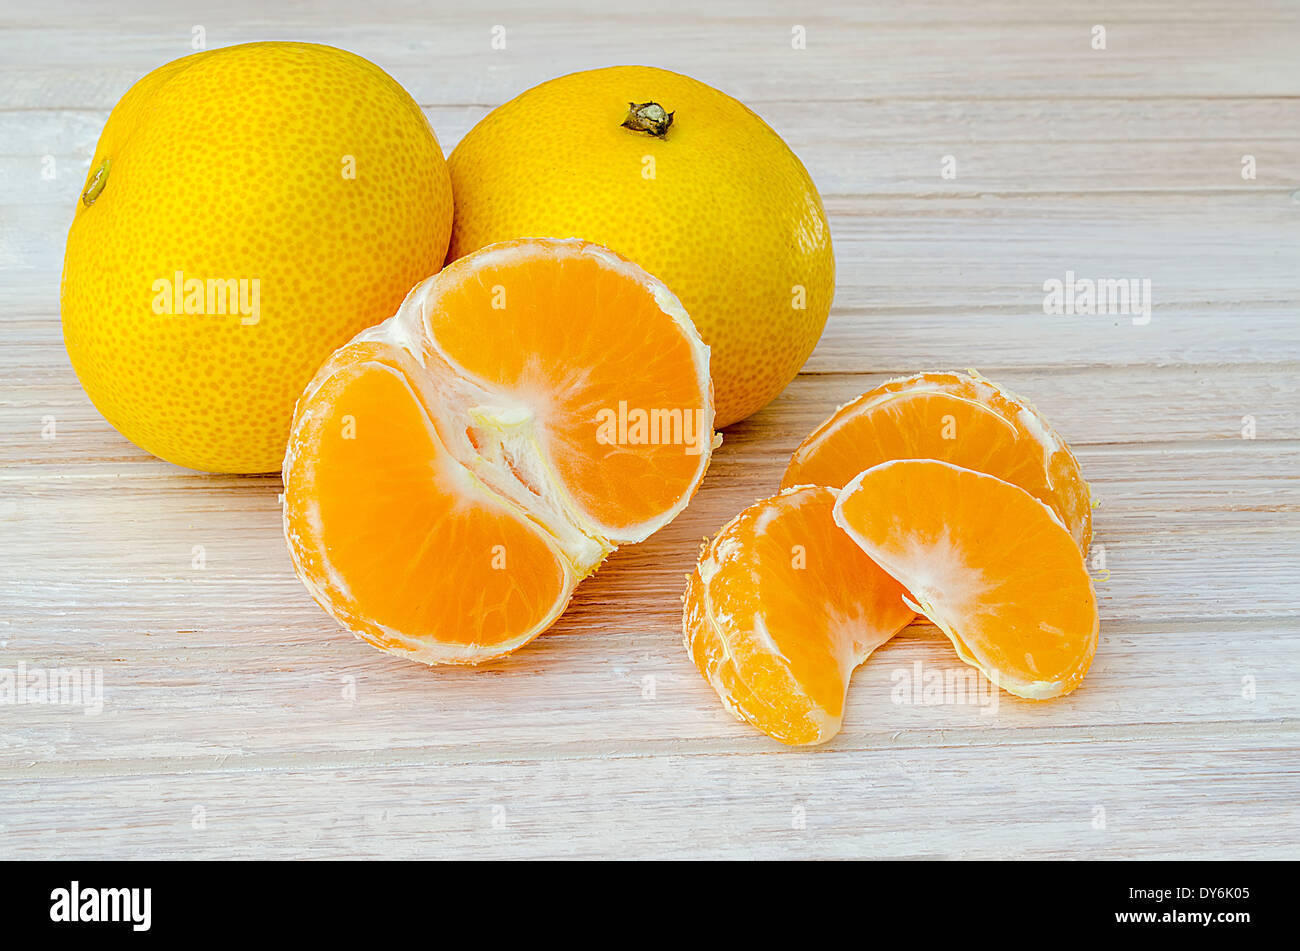 group of tangerines, one peeled and separated into segments on the white kitchen table - Stock Image